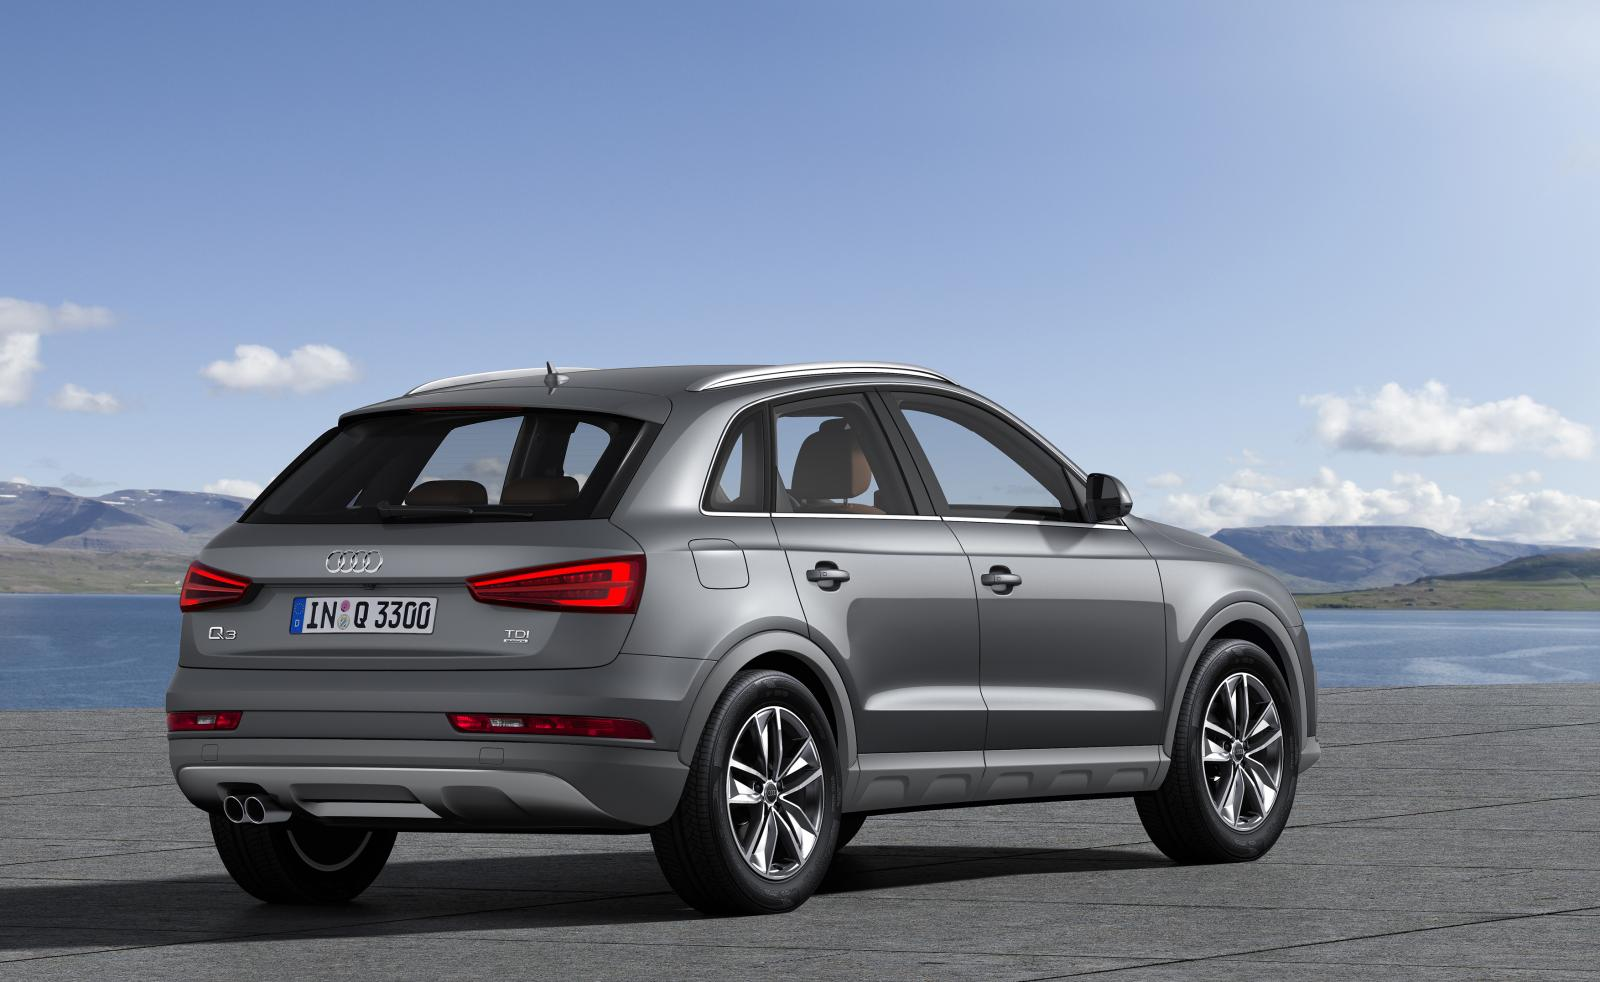 2015 audi q3 facelift india launch set for 18 june 2015 motoroids. Black Bedroom Furniture Sets. Home Design Ideas